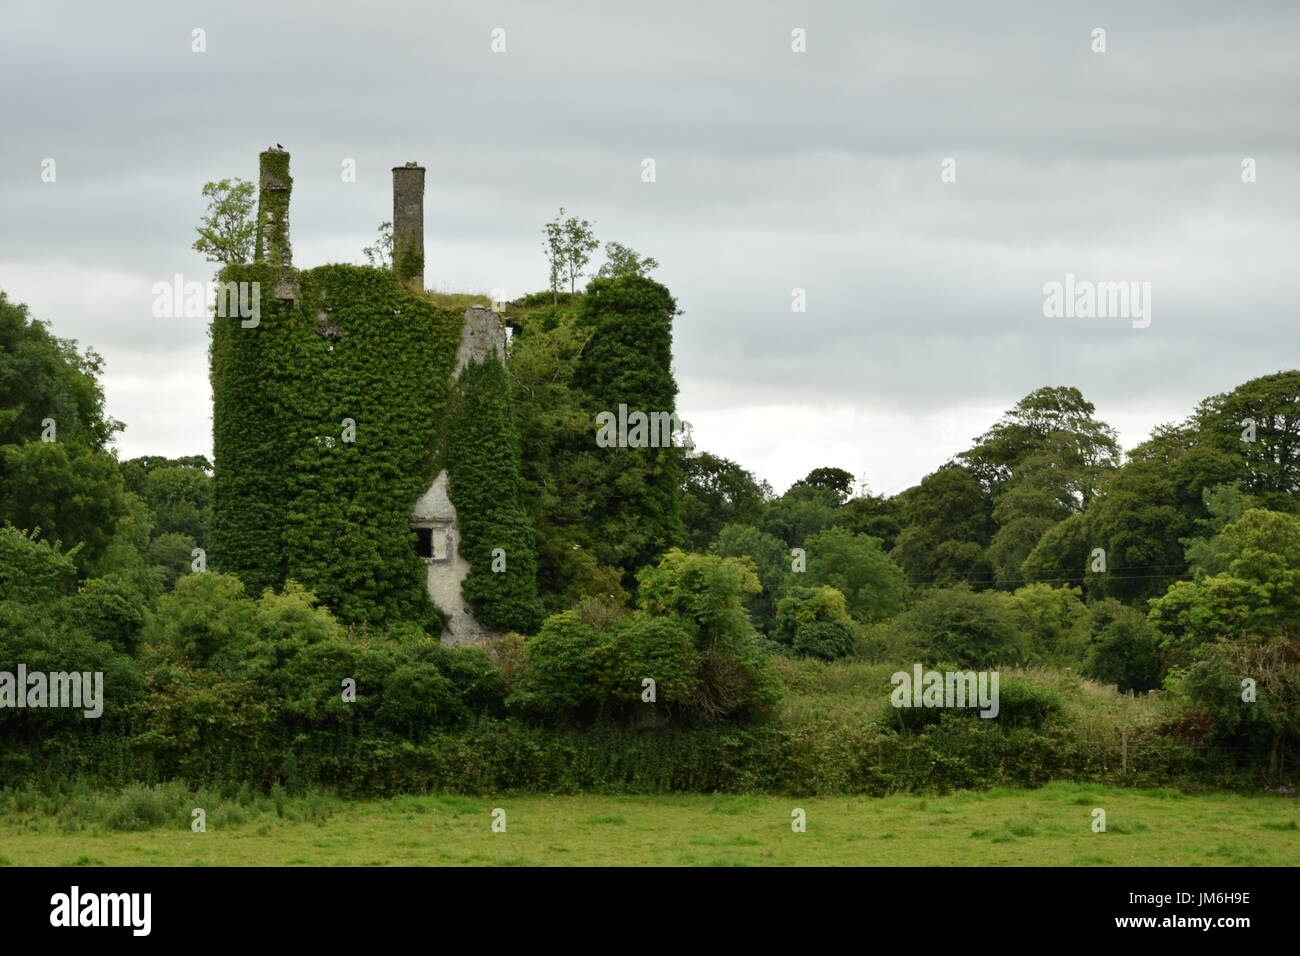 Hackett Castle near Knockma Hill in the County Galway, Ireland - Stock Image